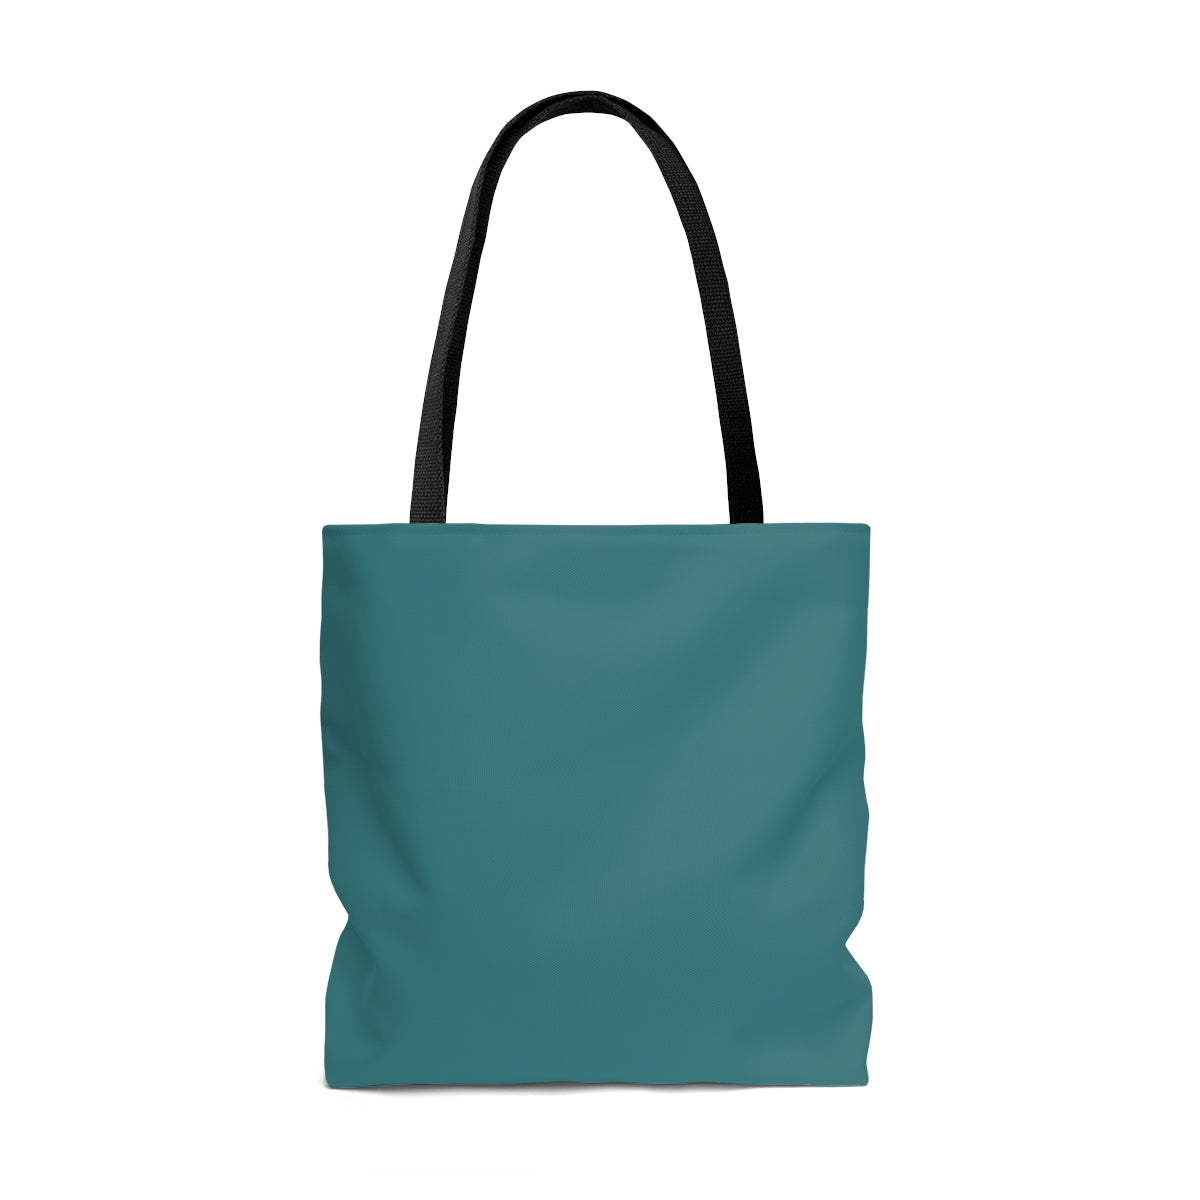 Grover Tote: Teal